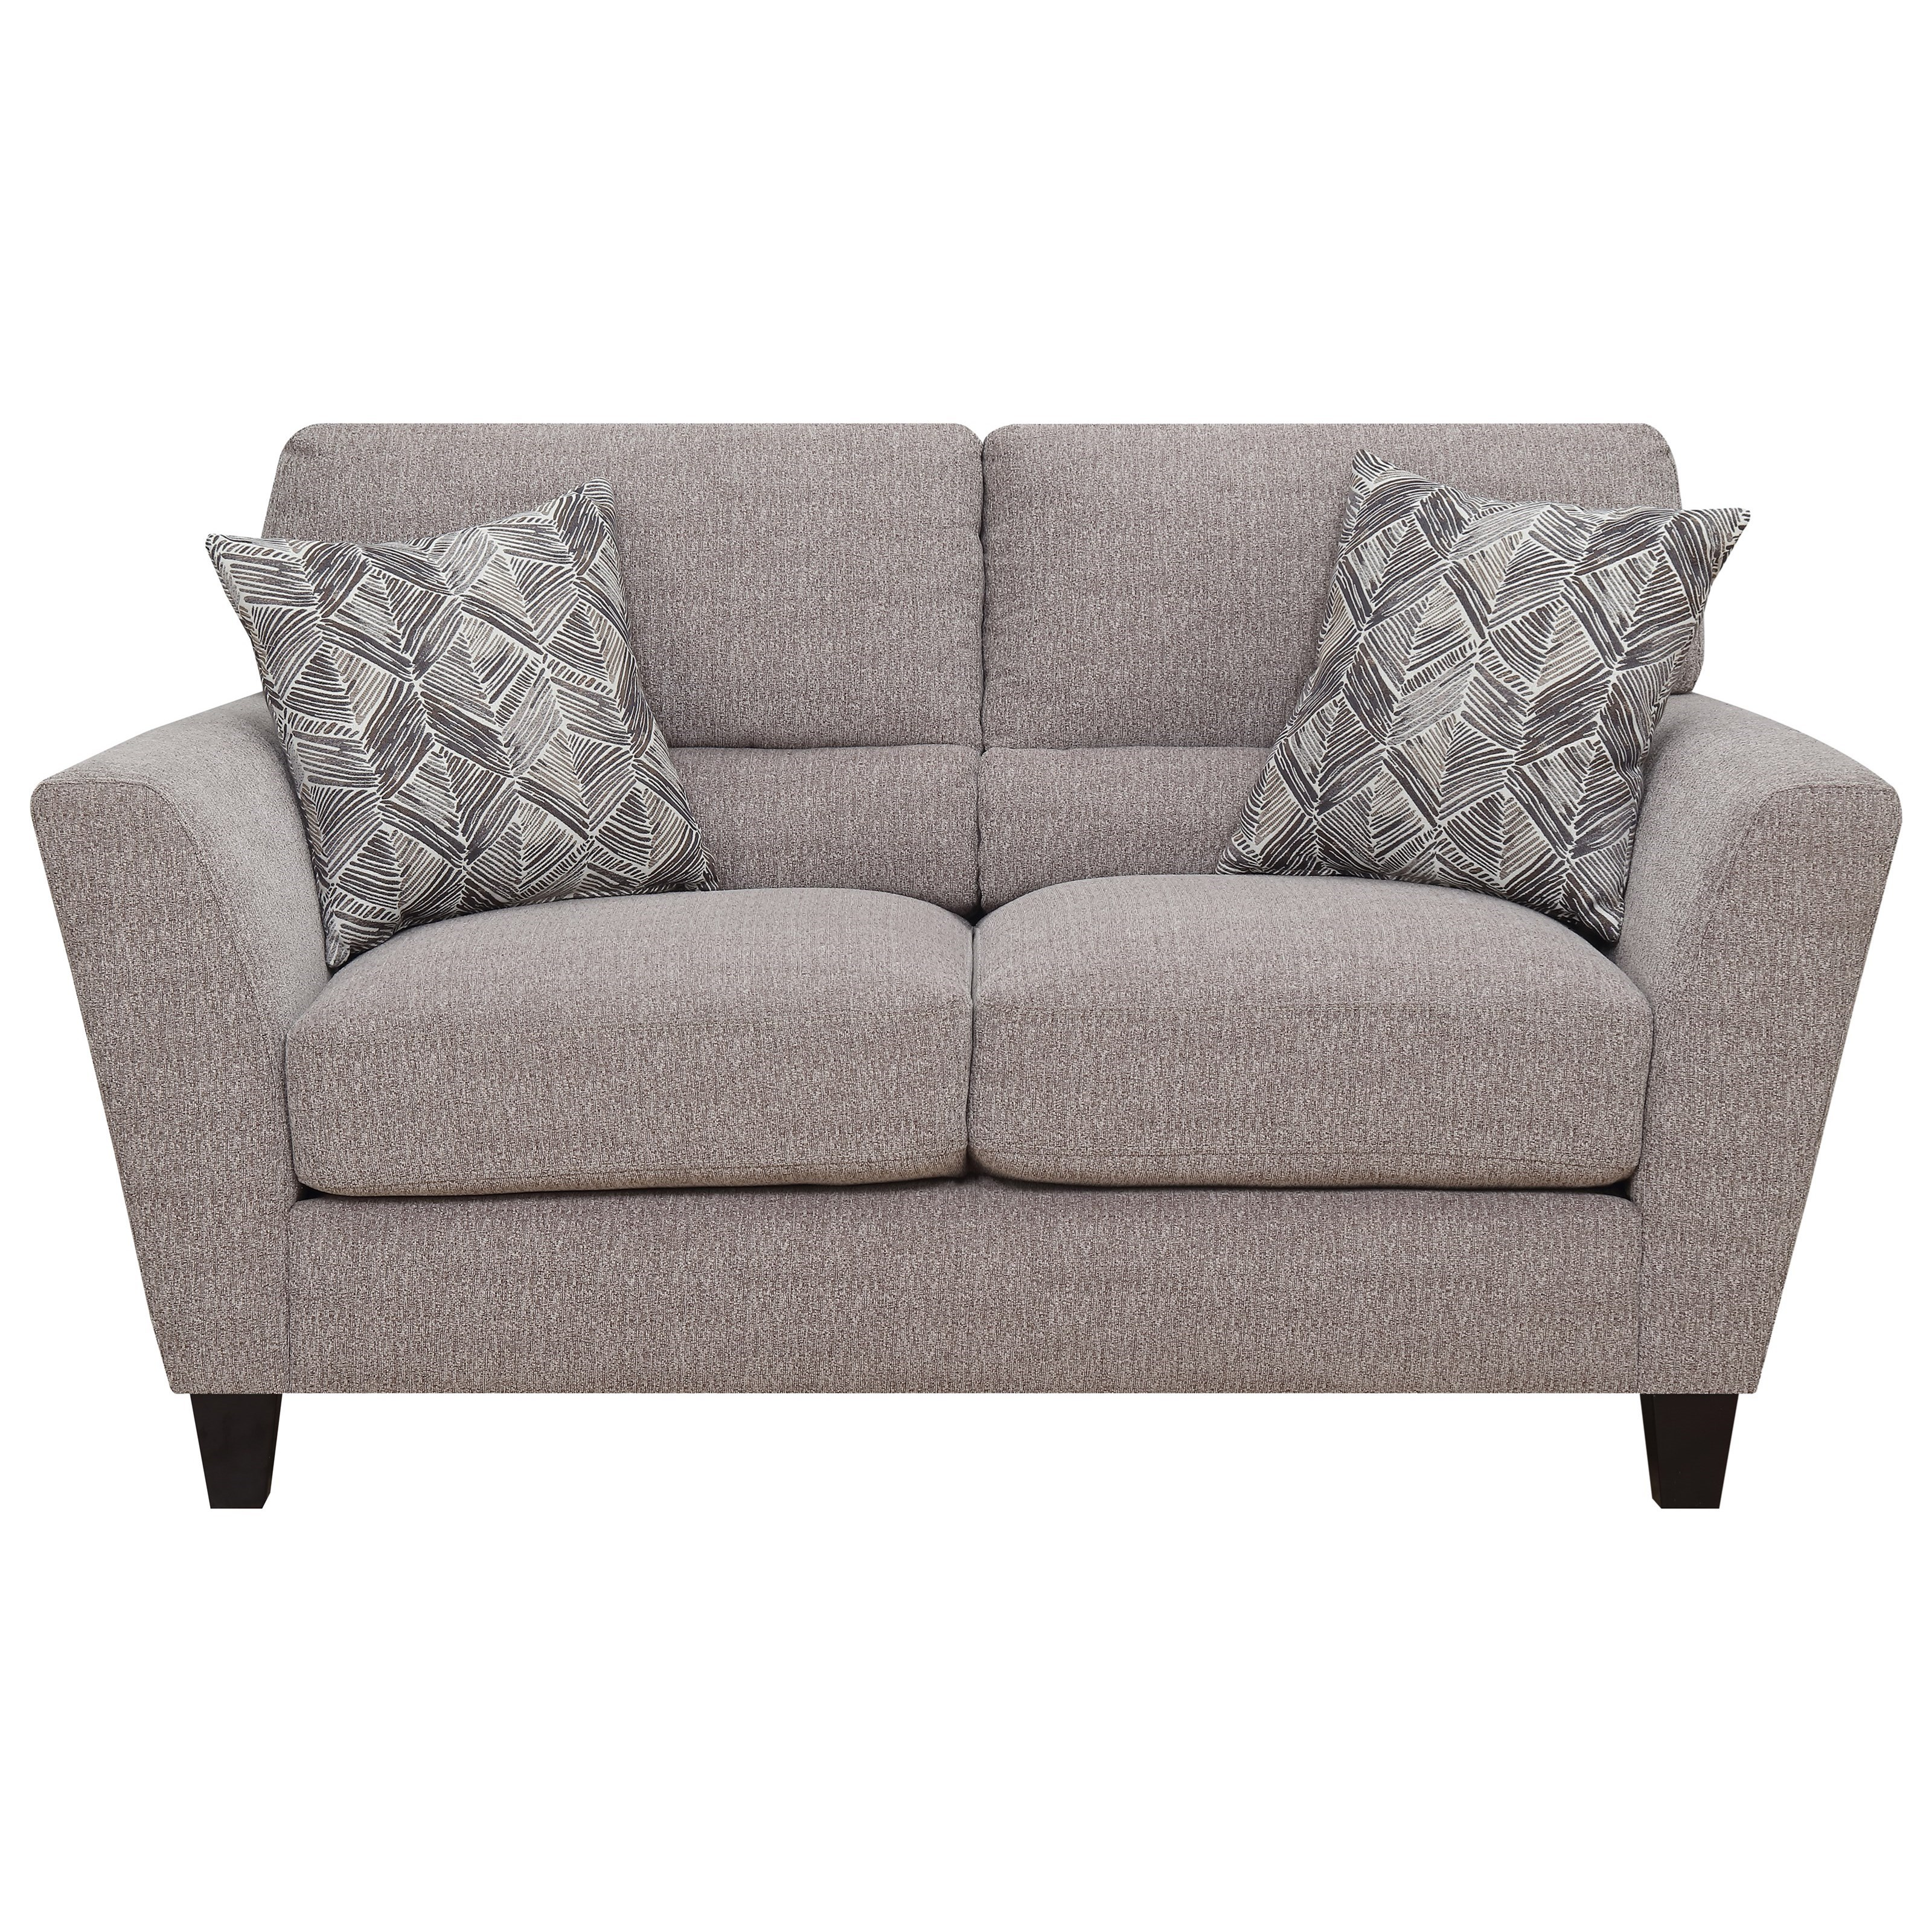 Speakeasy Loveseat w/ 2 Accent Pillows by Emerald at Northeast Factory Direct